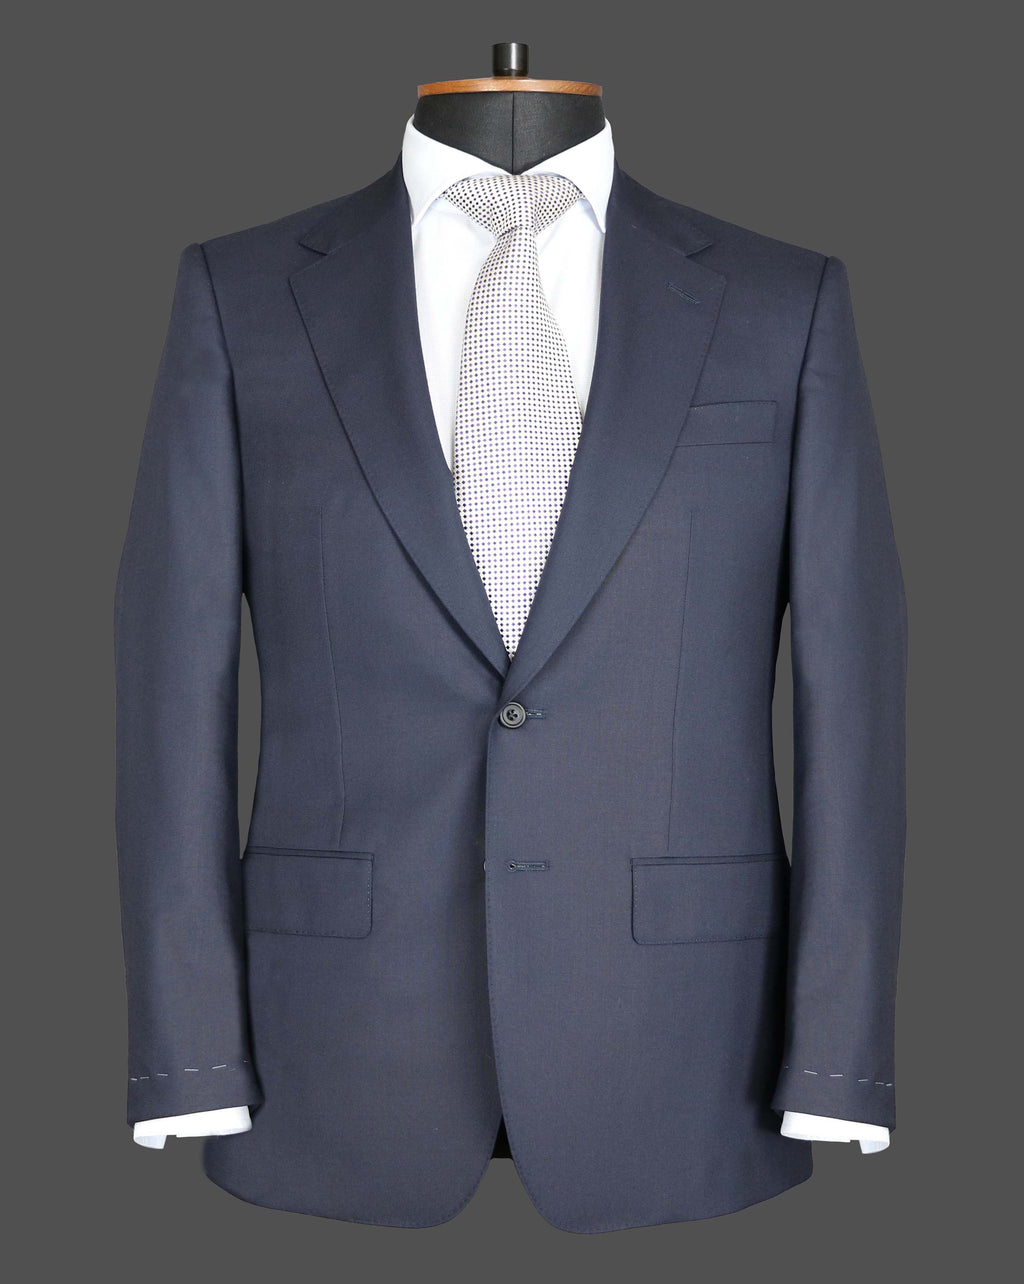 TLA064 - Plain Midnight Navy Suit